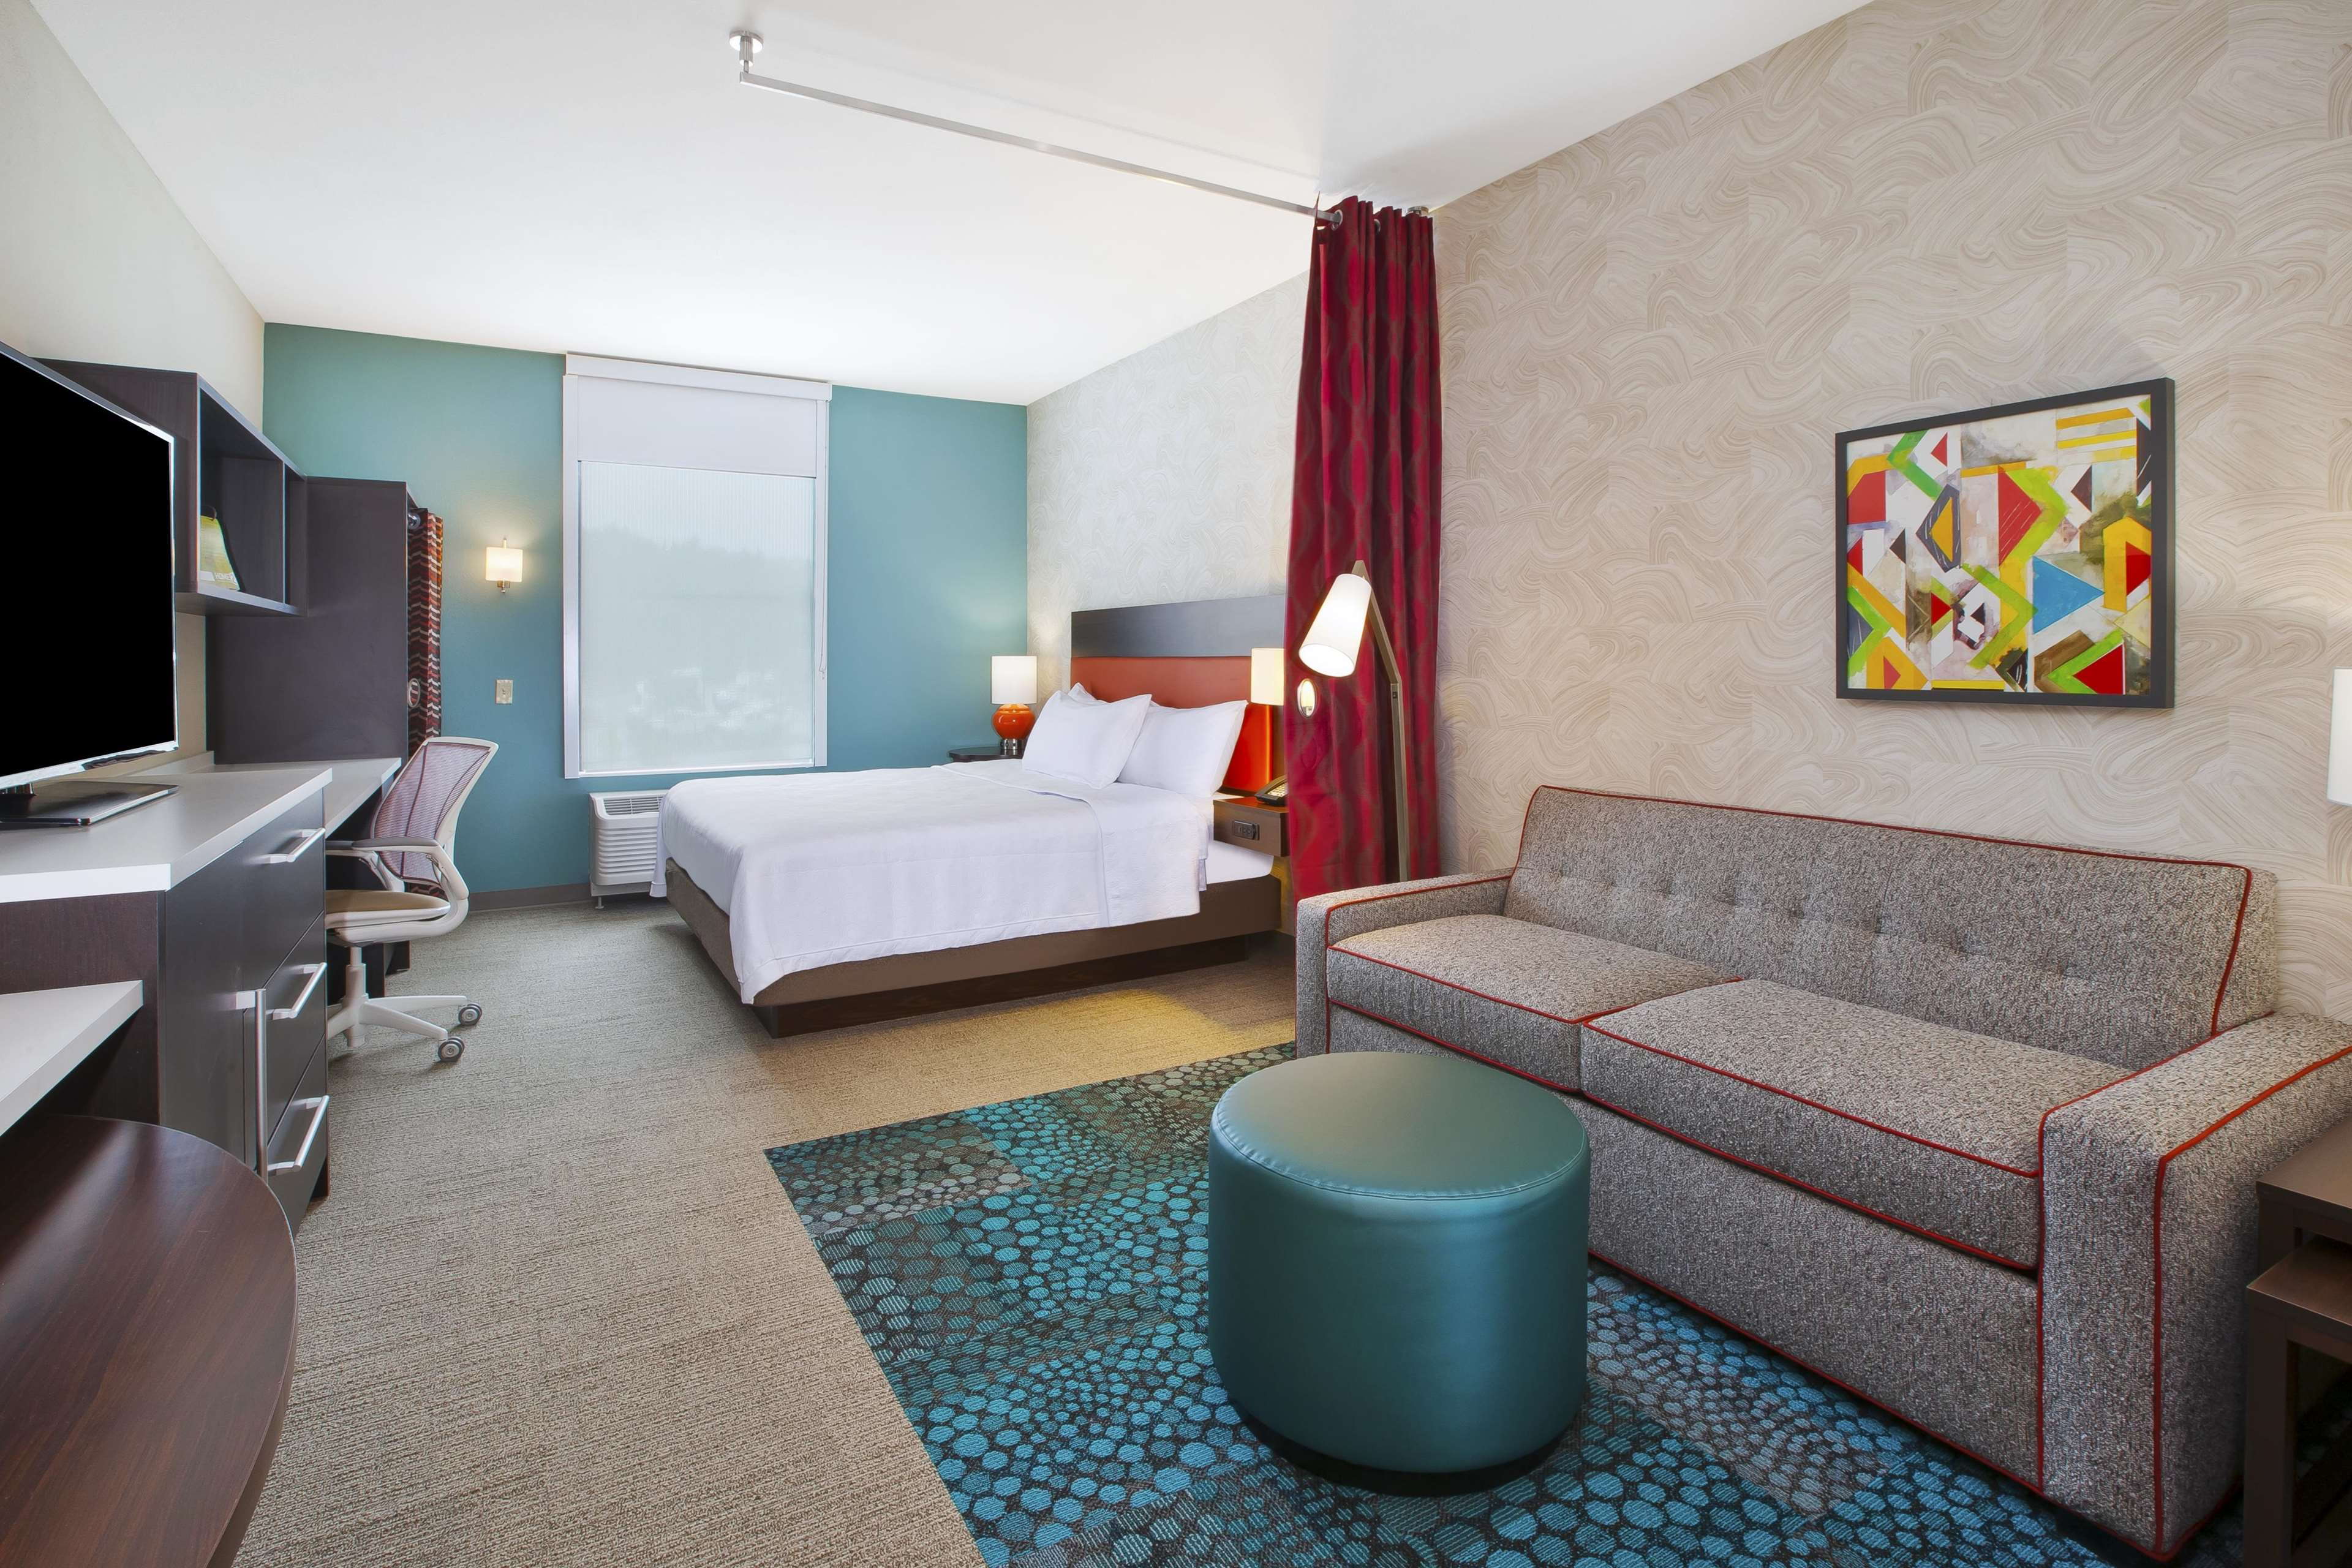 Home2 Suites by Hilton Holland image 0